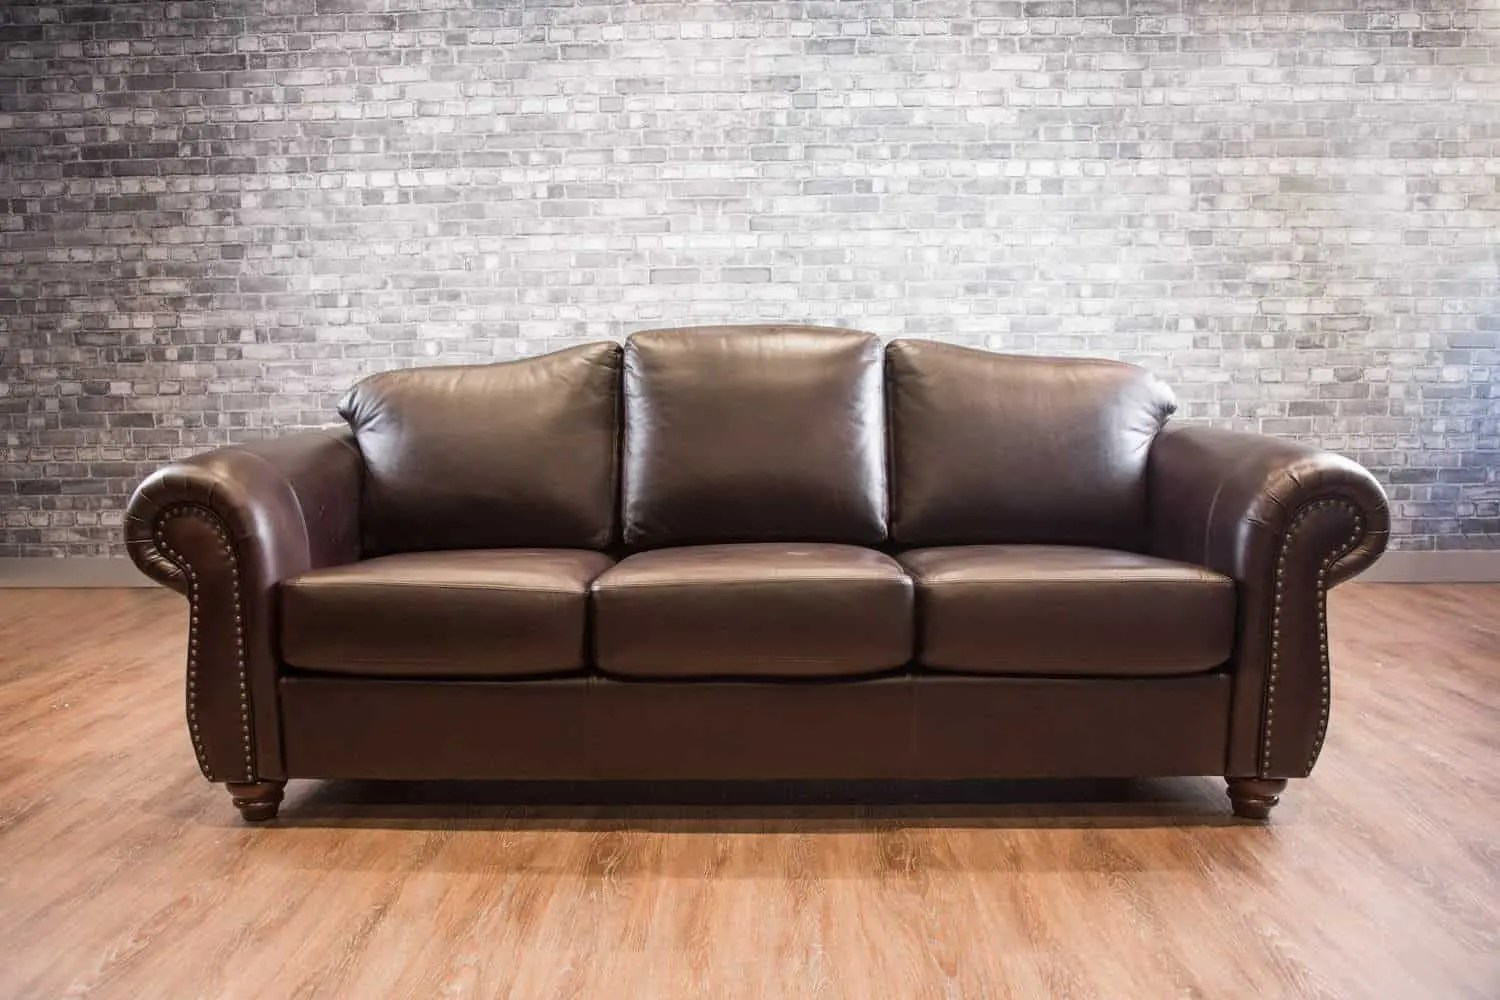 Shipping Furniture Canada Leather Sofa Utah Diva Italian Leather Sofa Utah Smoke